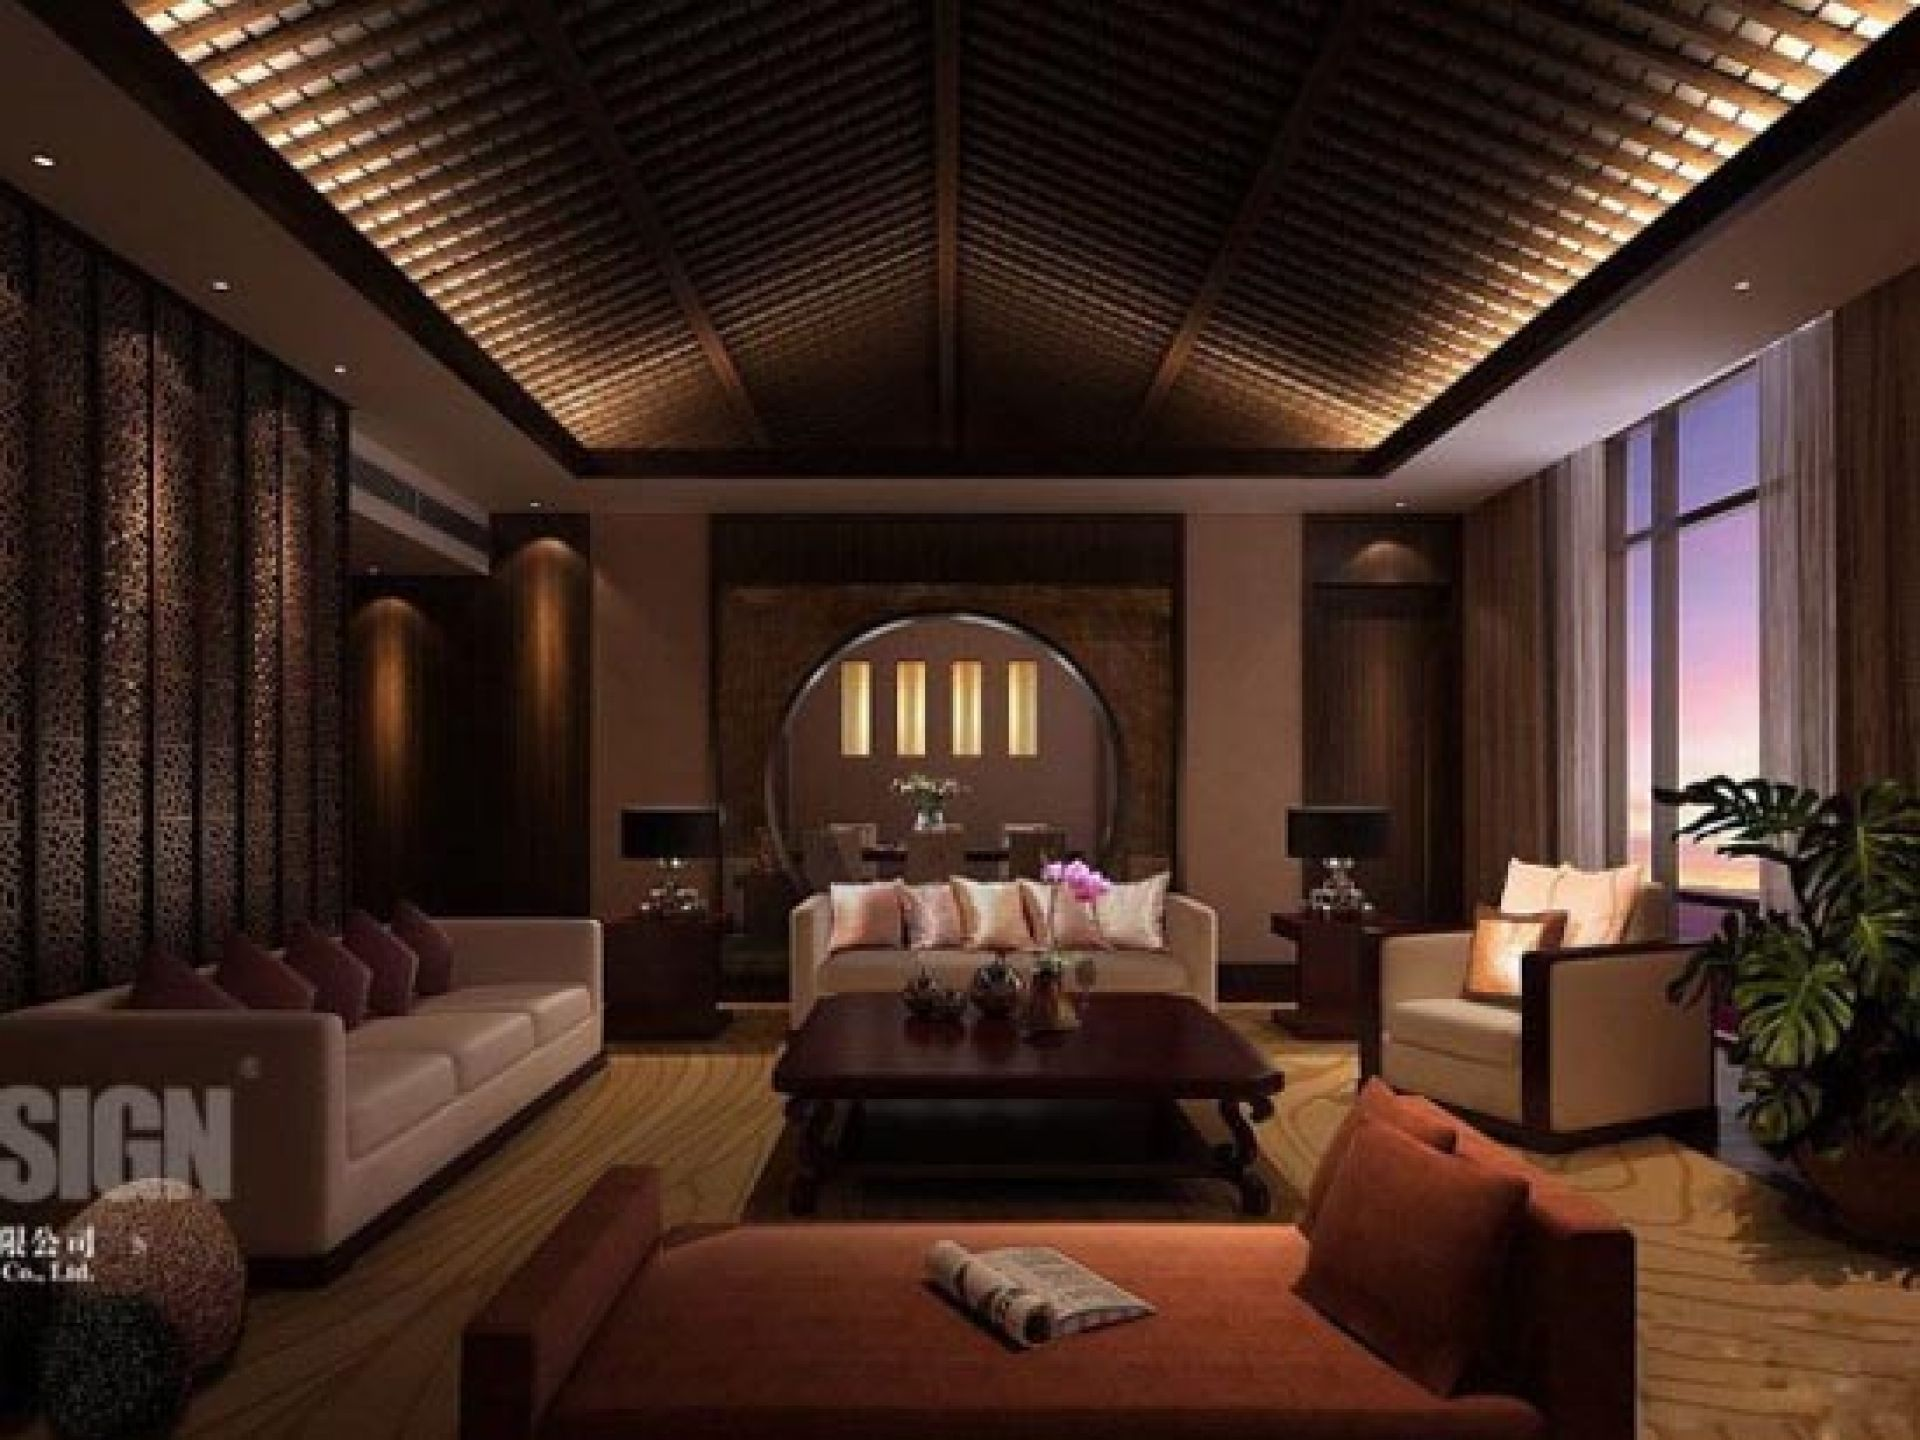 ceilings eflyg sloped design beds recessed ceiling lighting